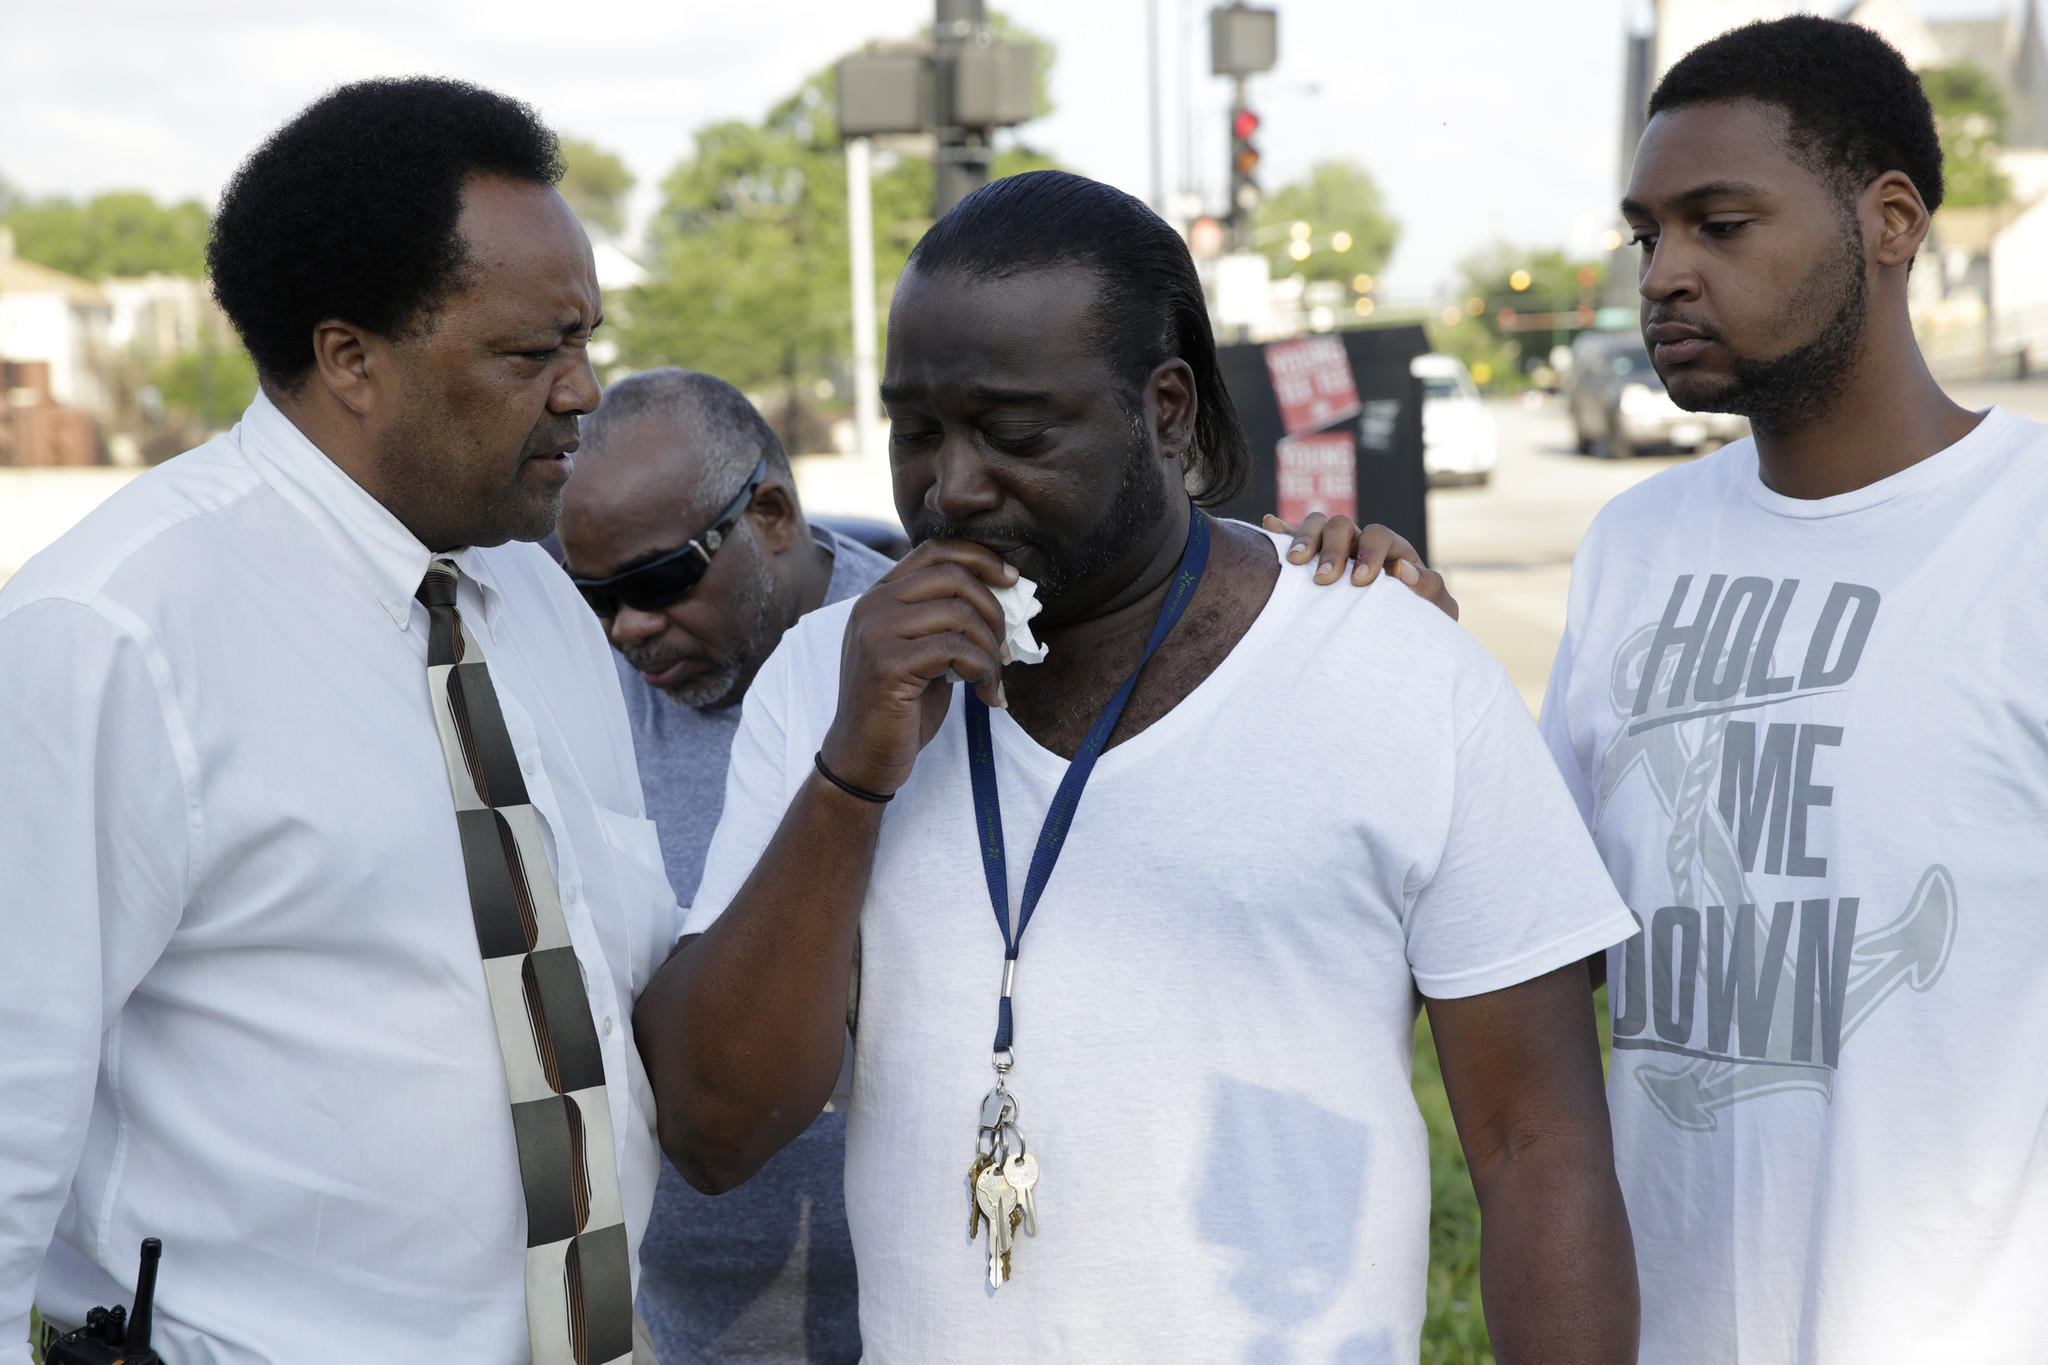 Pierre Curry, Sr., center, is consoled by community activist Andrew Holmes, left, and his cousin Eric Willis, 19, right, on 59th Street and the Dan Ryan Expressway after his pregnant 25-year-old daughter Jasmine Curry was shot and killed on the expressway. Michael Tercha/Chicago Tribune)